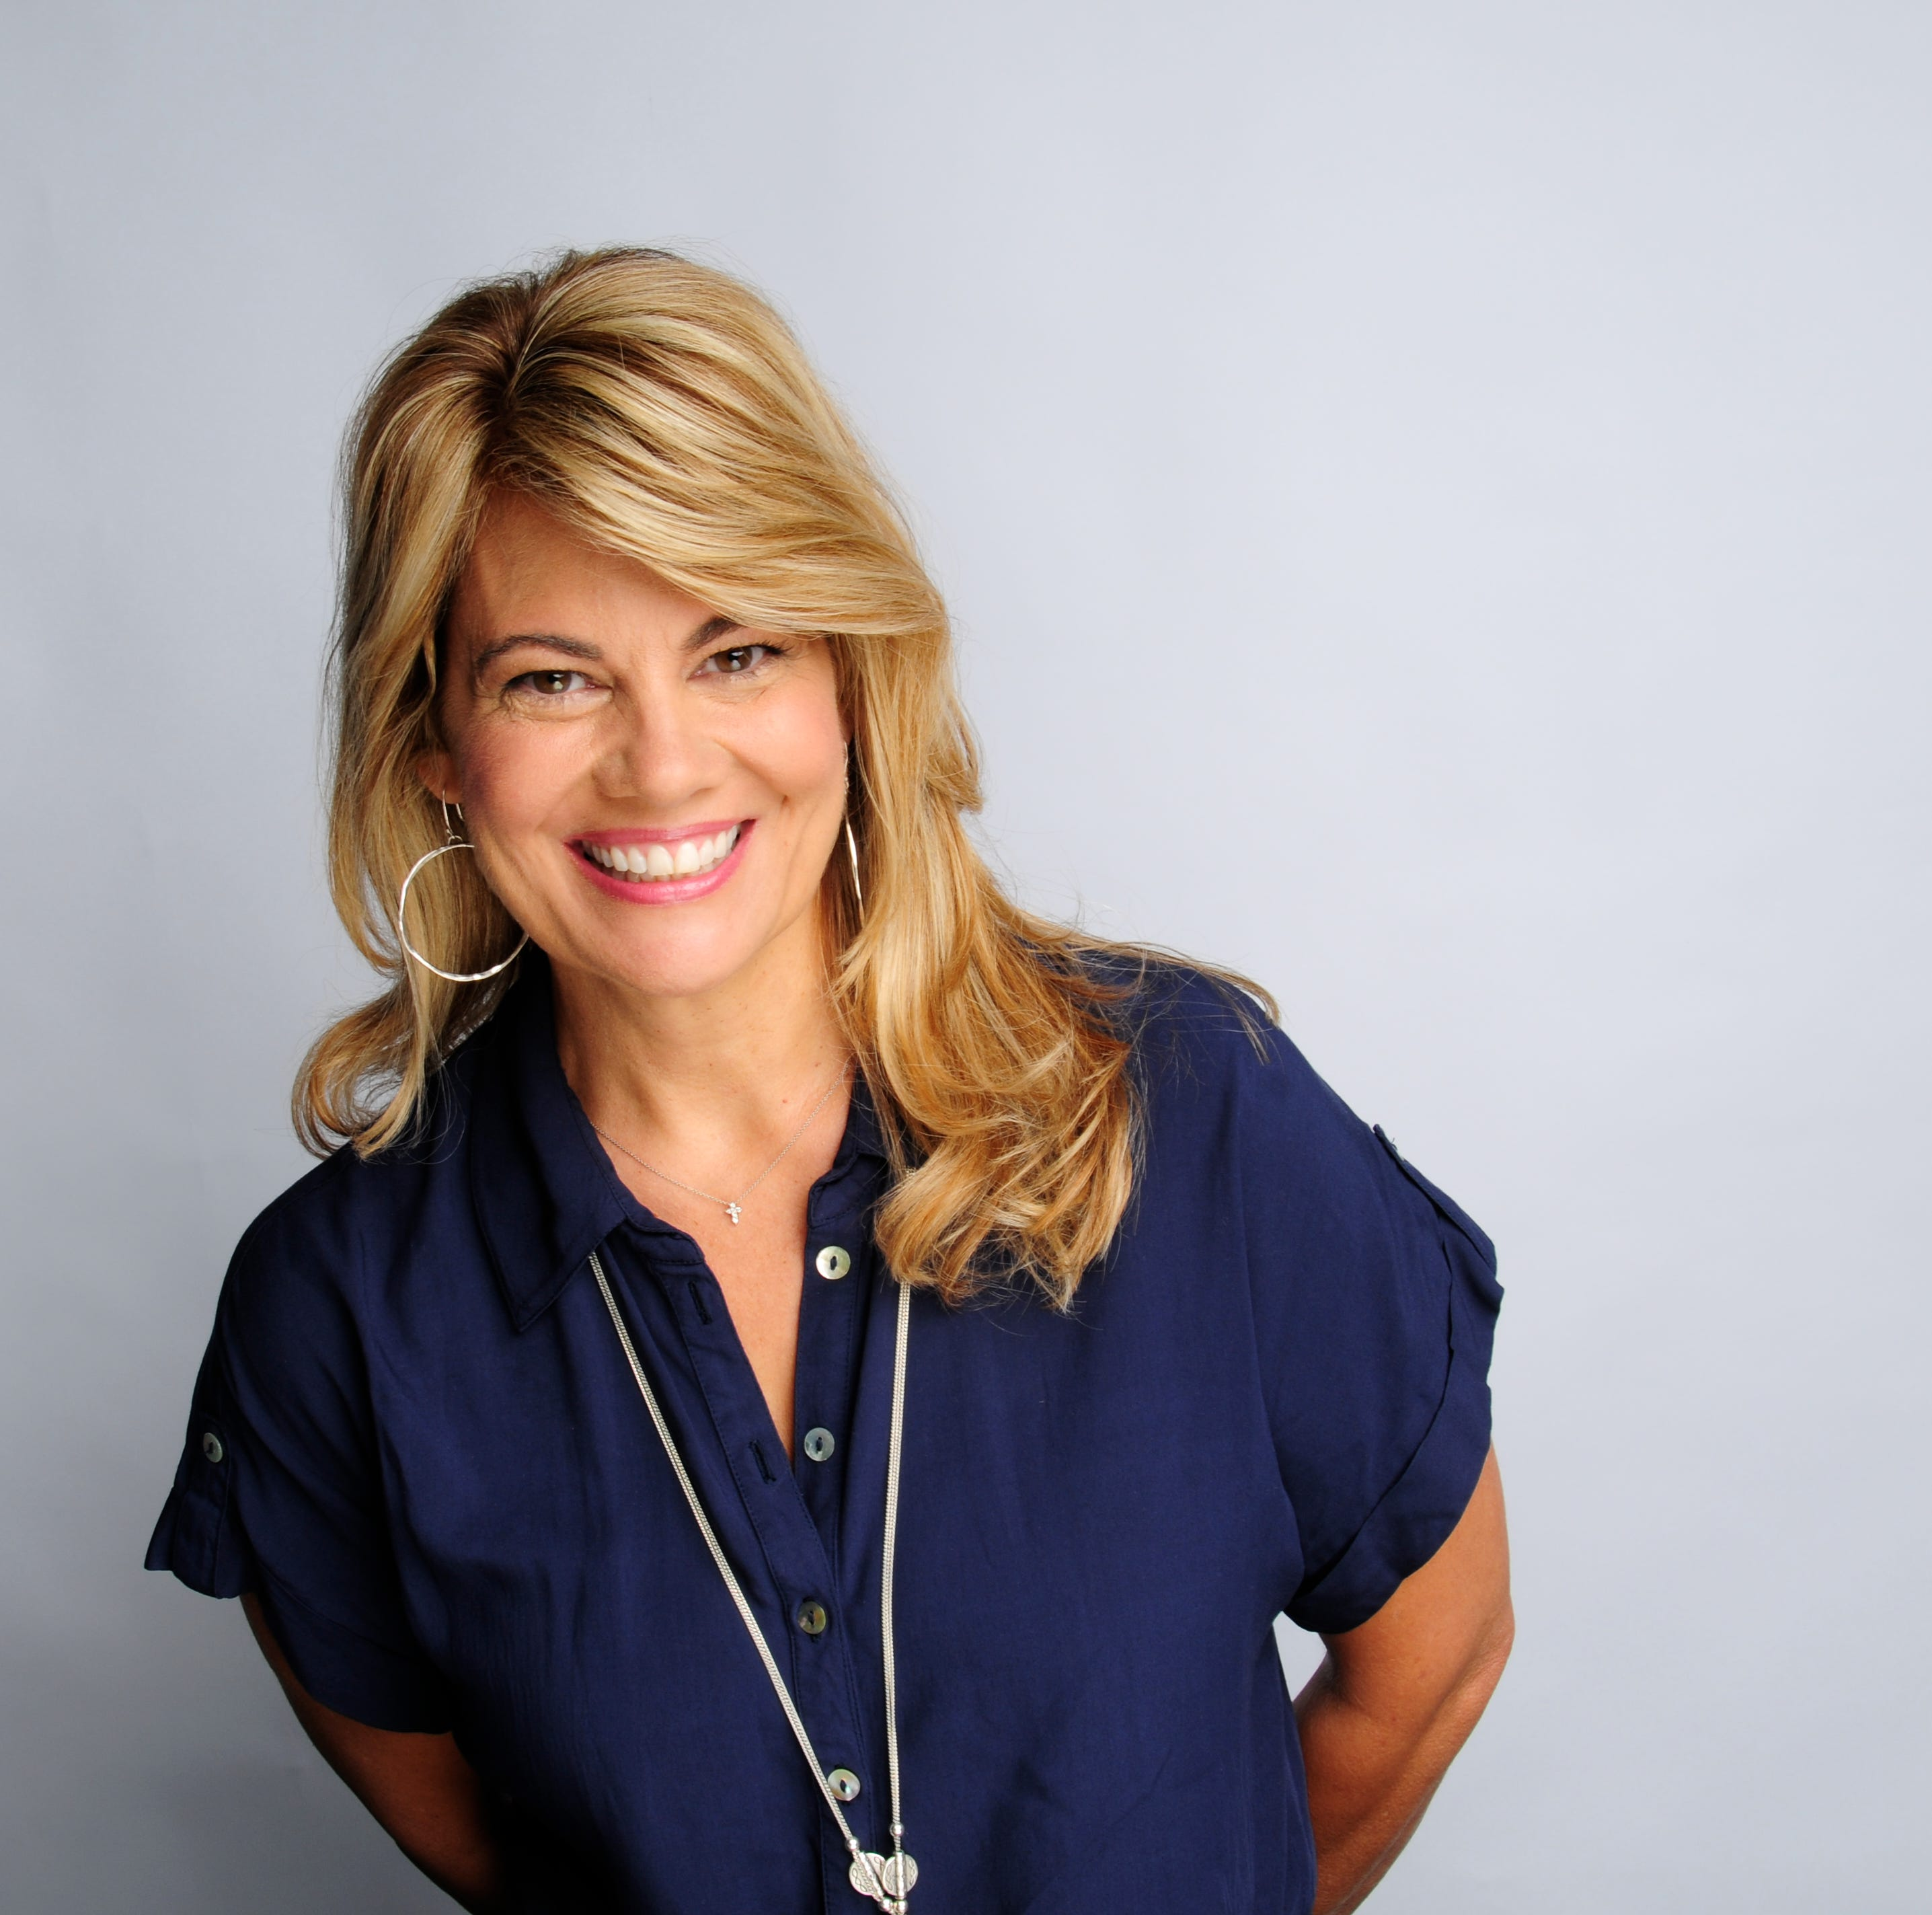 'Facts of Life' star Lisa Whelchel to speak at Henderson church